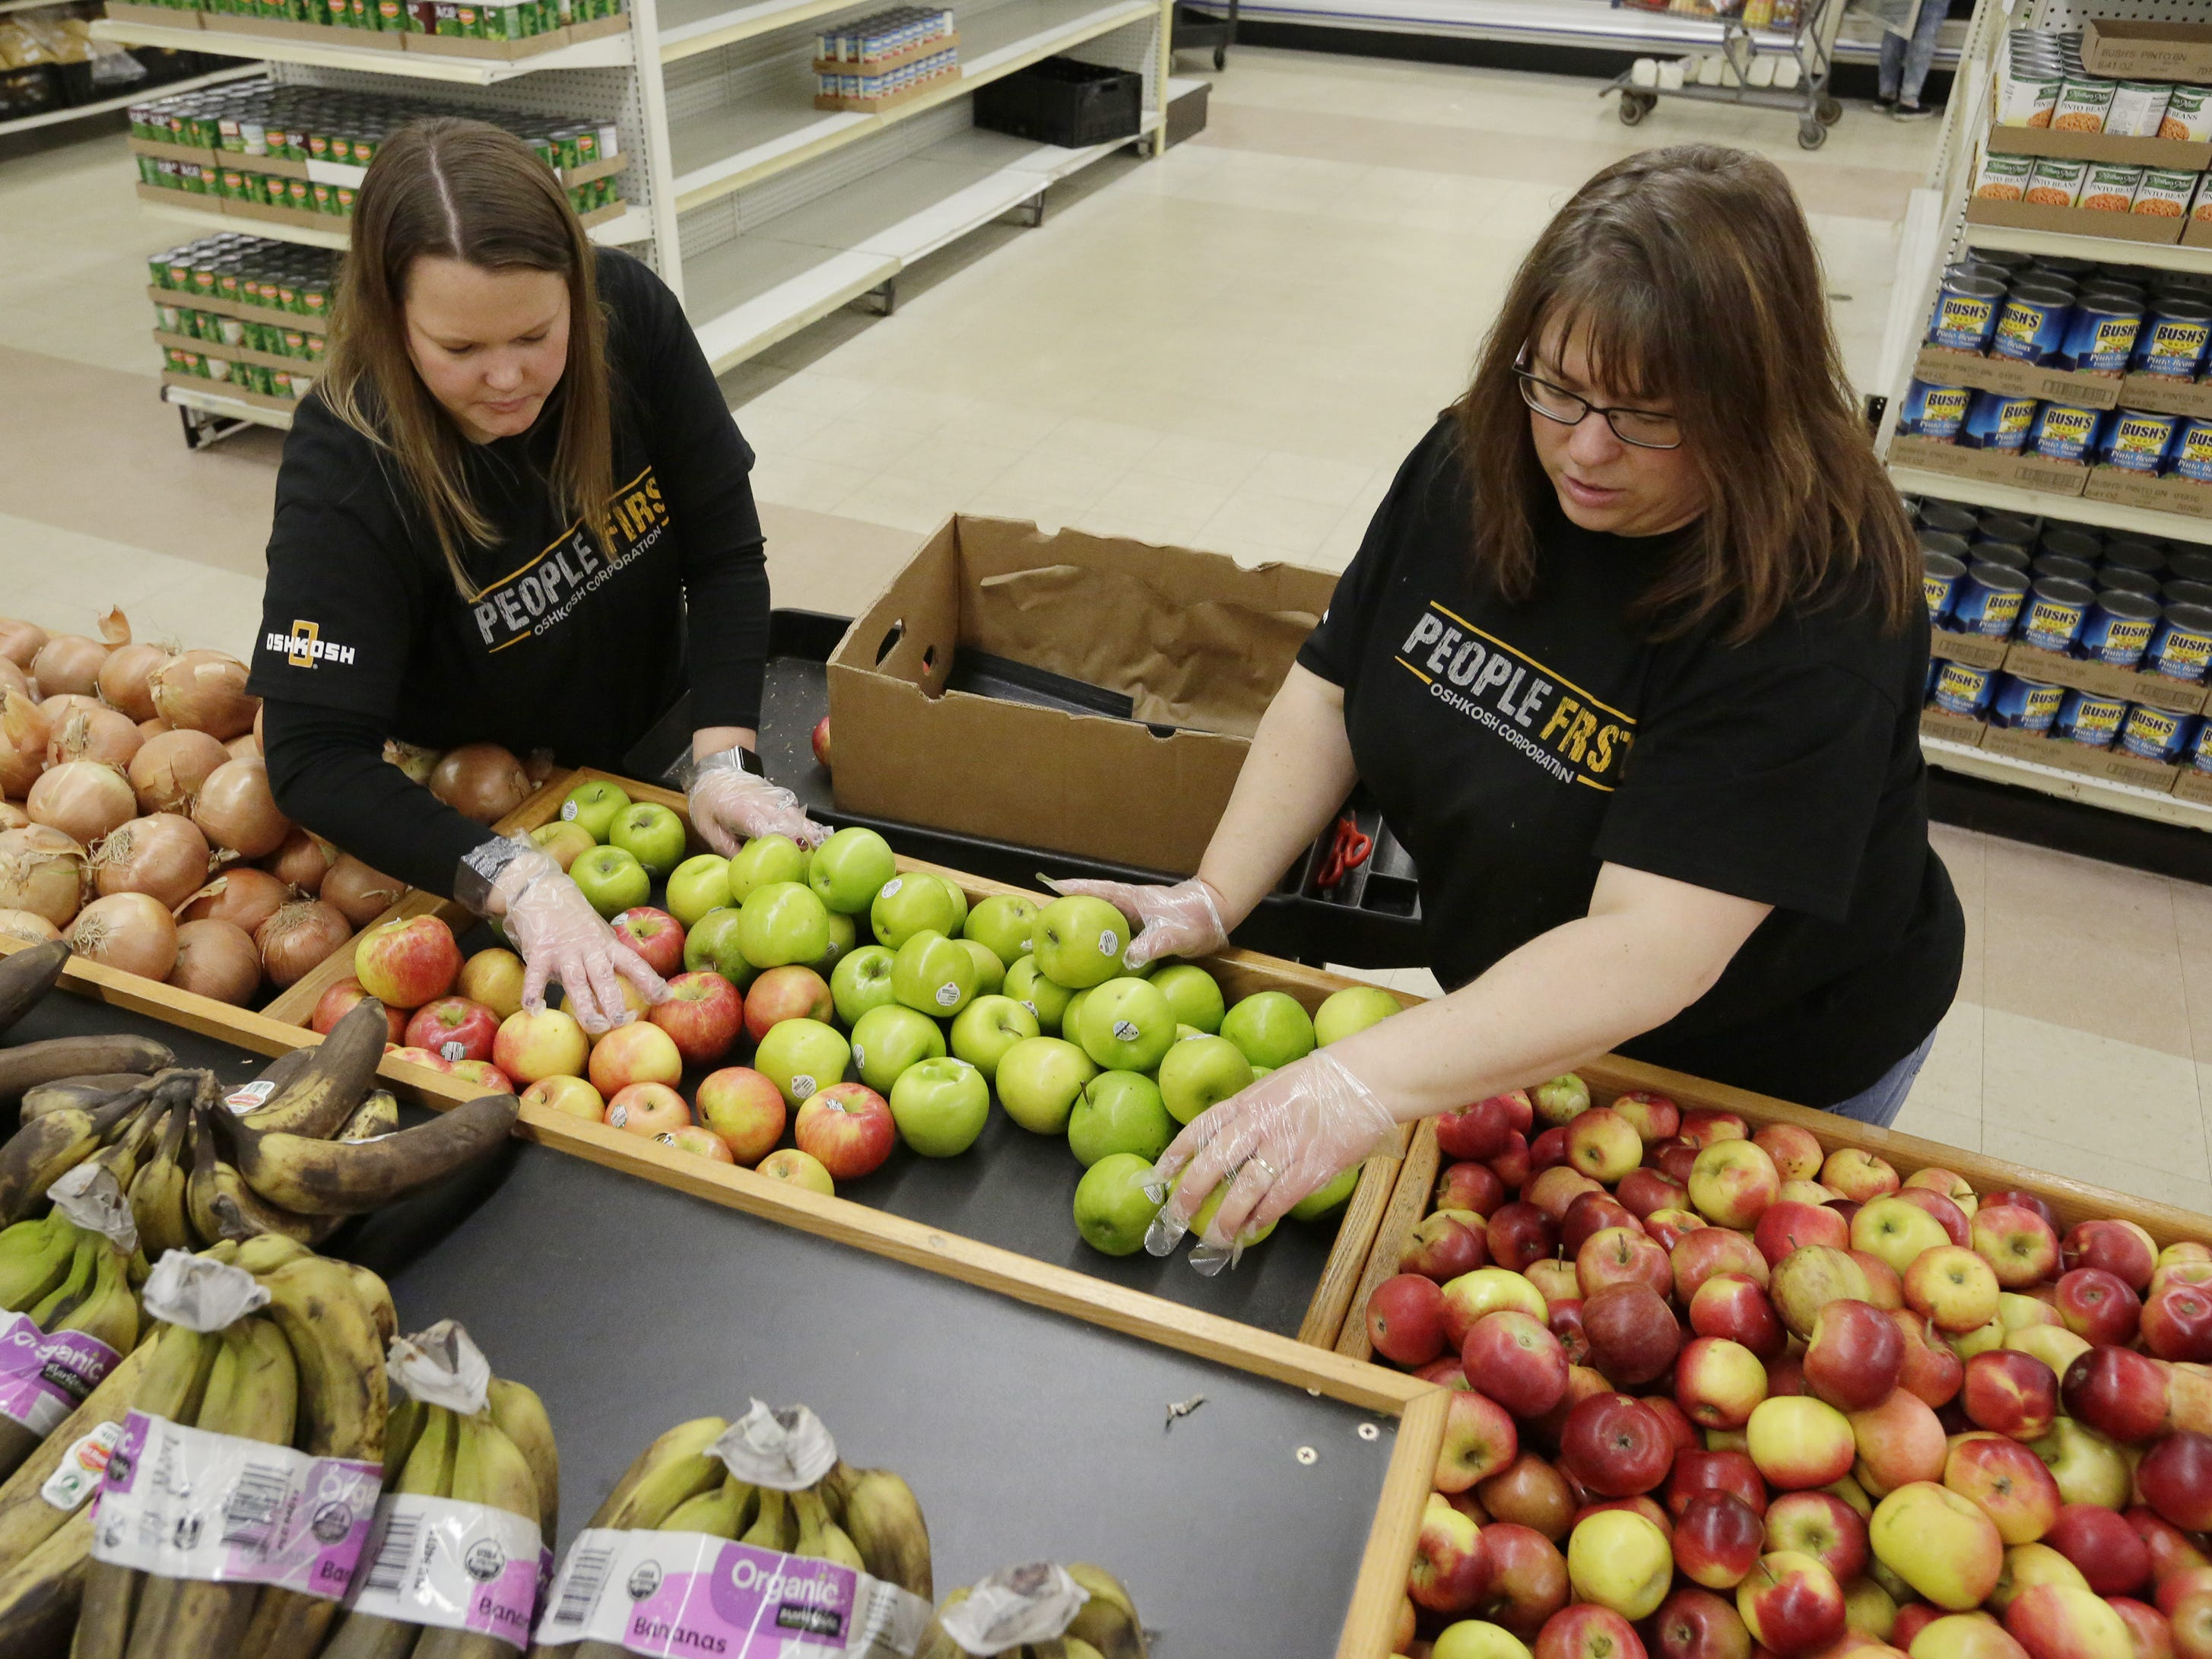 Volunteers Adrienna Bartell and Christine Heiser of Oshkosh Defense sort apples Wednesday, Oct. 24, 2018, at the Oshkosh Area Community Pantry. Over 2,000 families use the pantry each month.